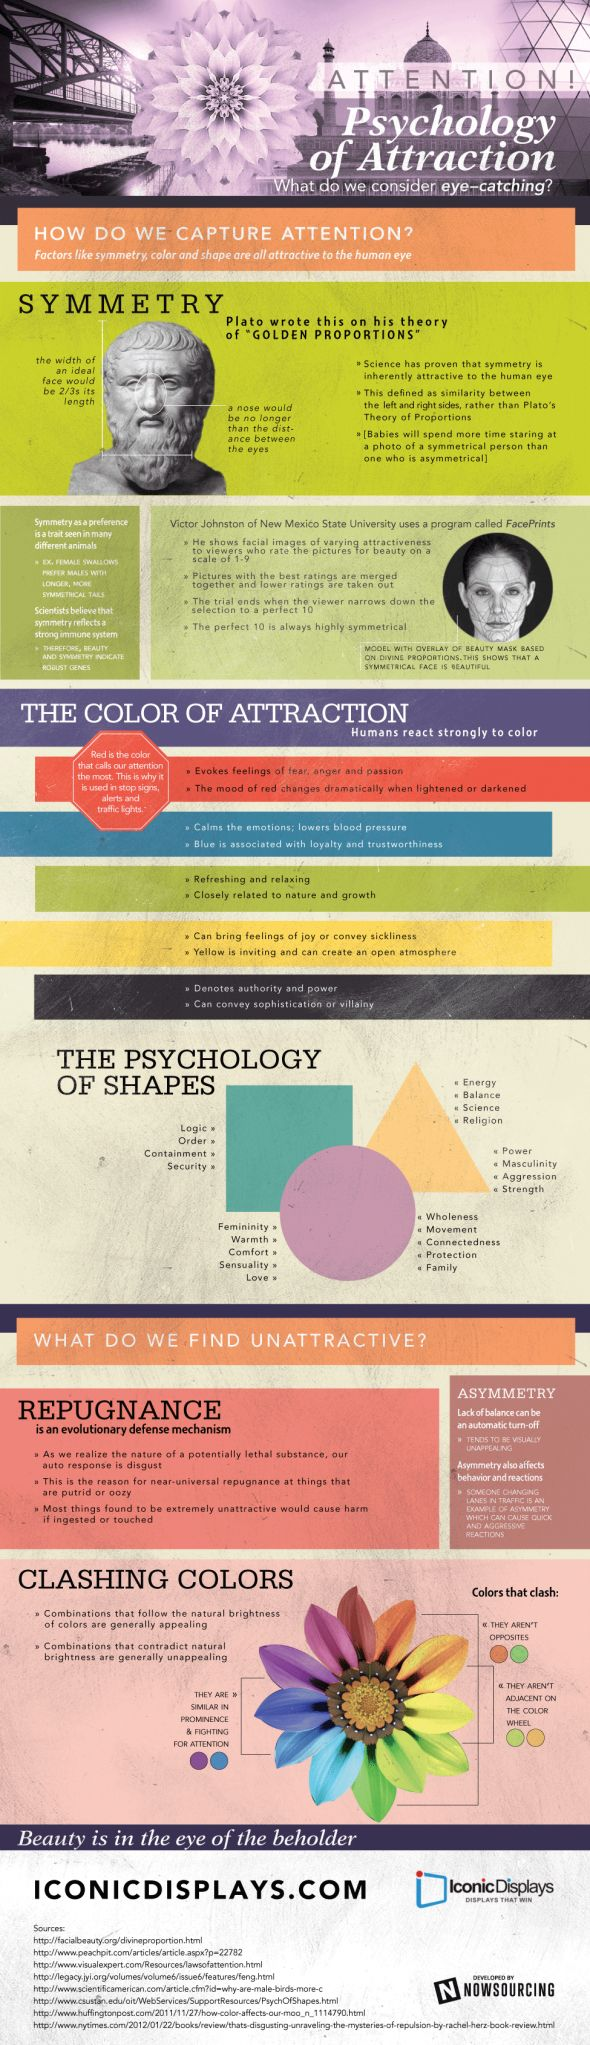 INFOGRAPHIC: THE PSYCHOLOGY OF ATTRACTION